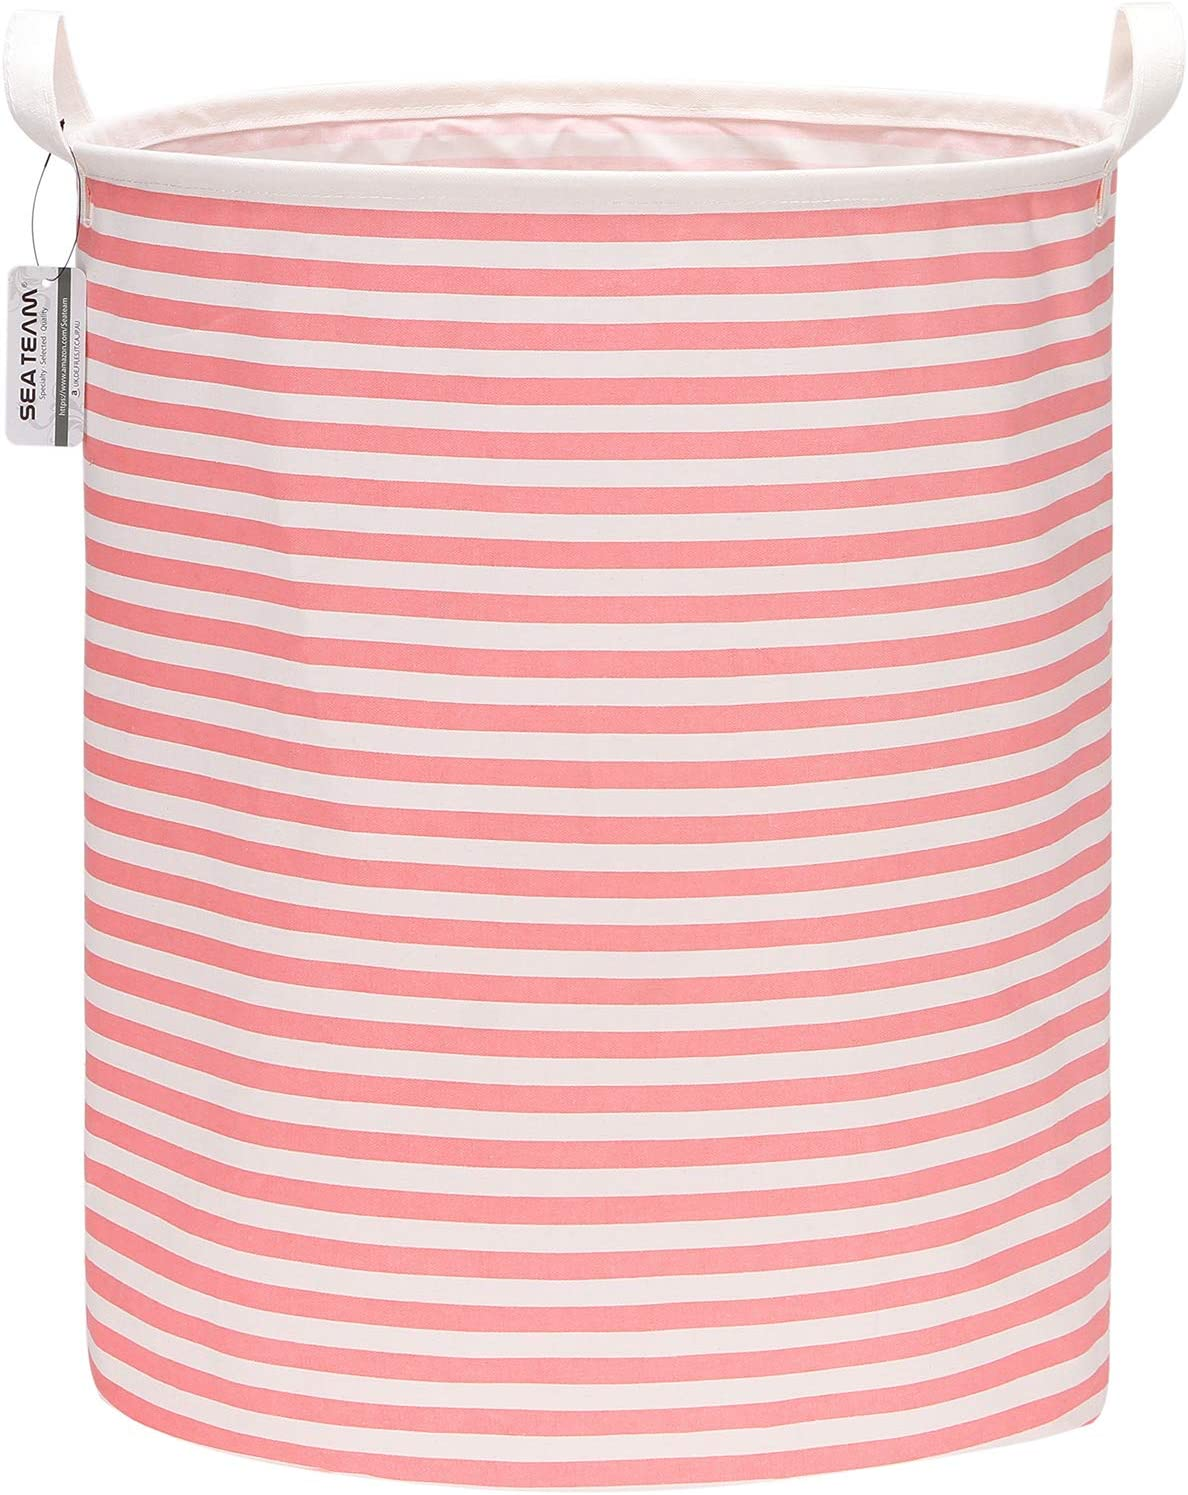 "Sea Team 19.7 Inches Large Sized Waterproof Coating Ramie Cotton Fabric Folding Laundry Hamper Bucket Cylindric Burlap Canvas Storage Basket (19.7"", Pink & White Stripe)"